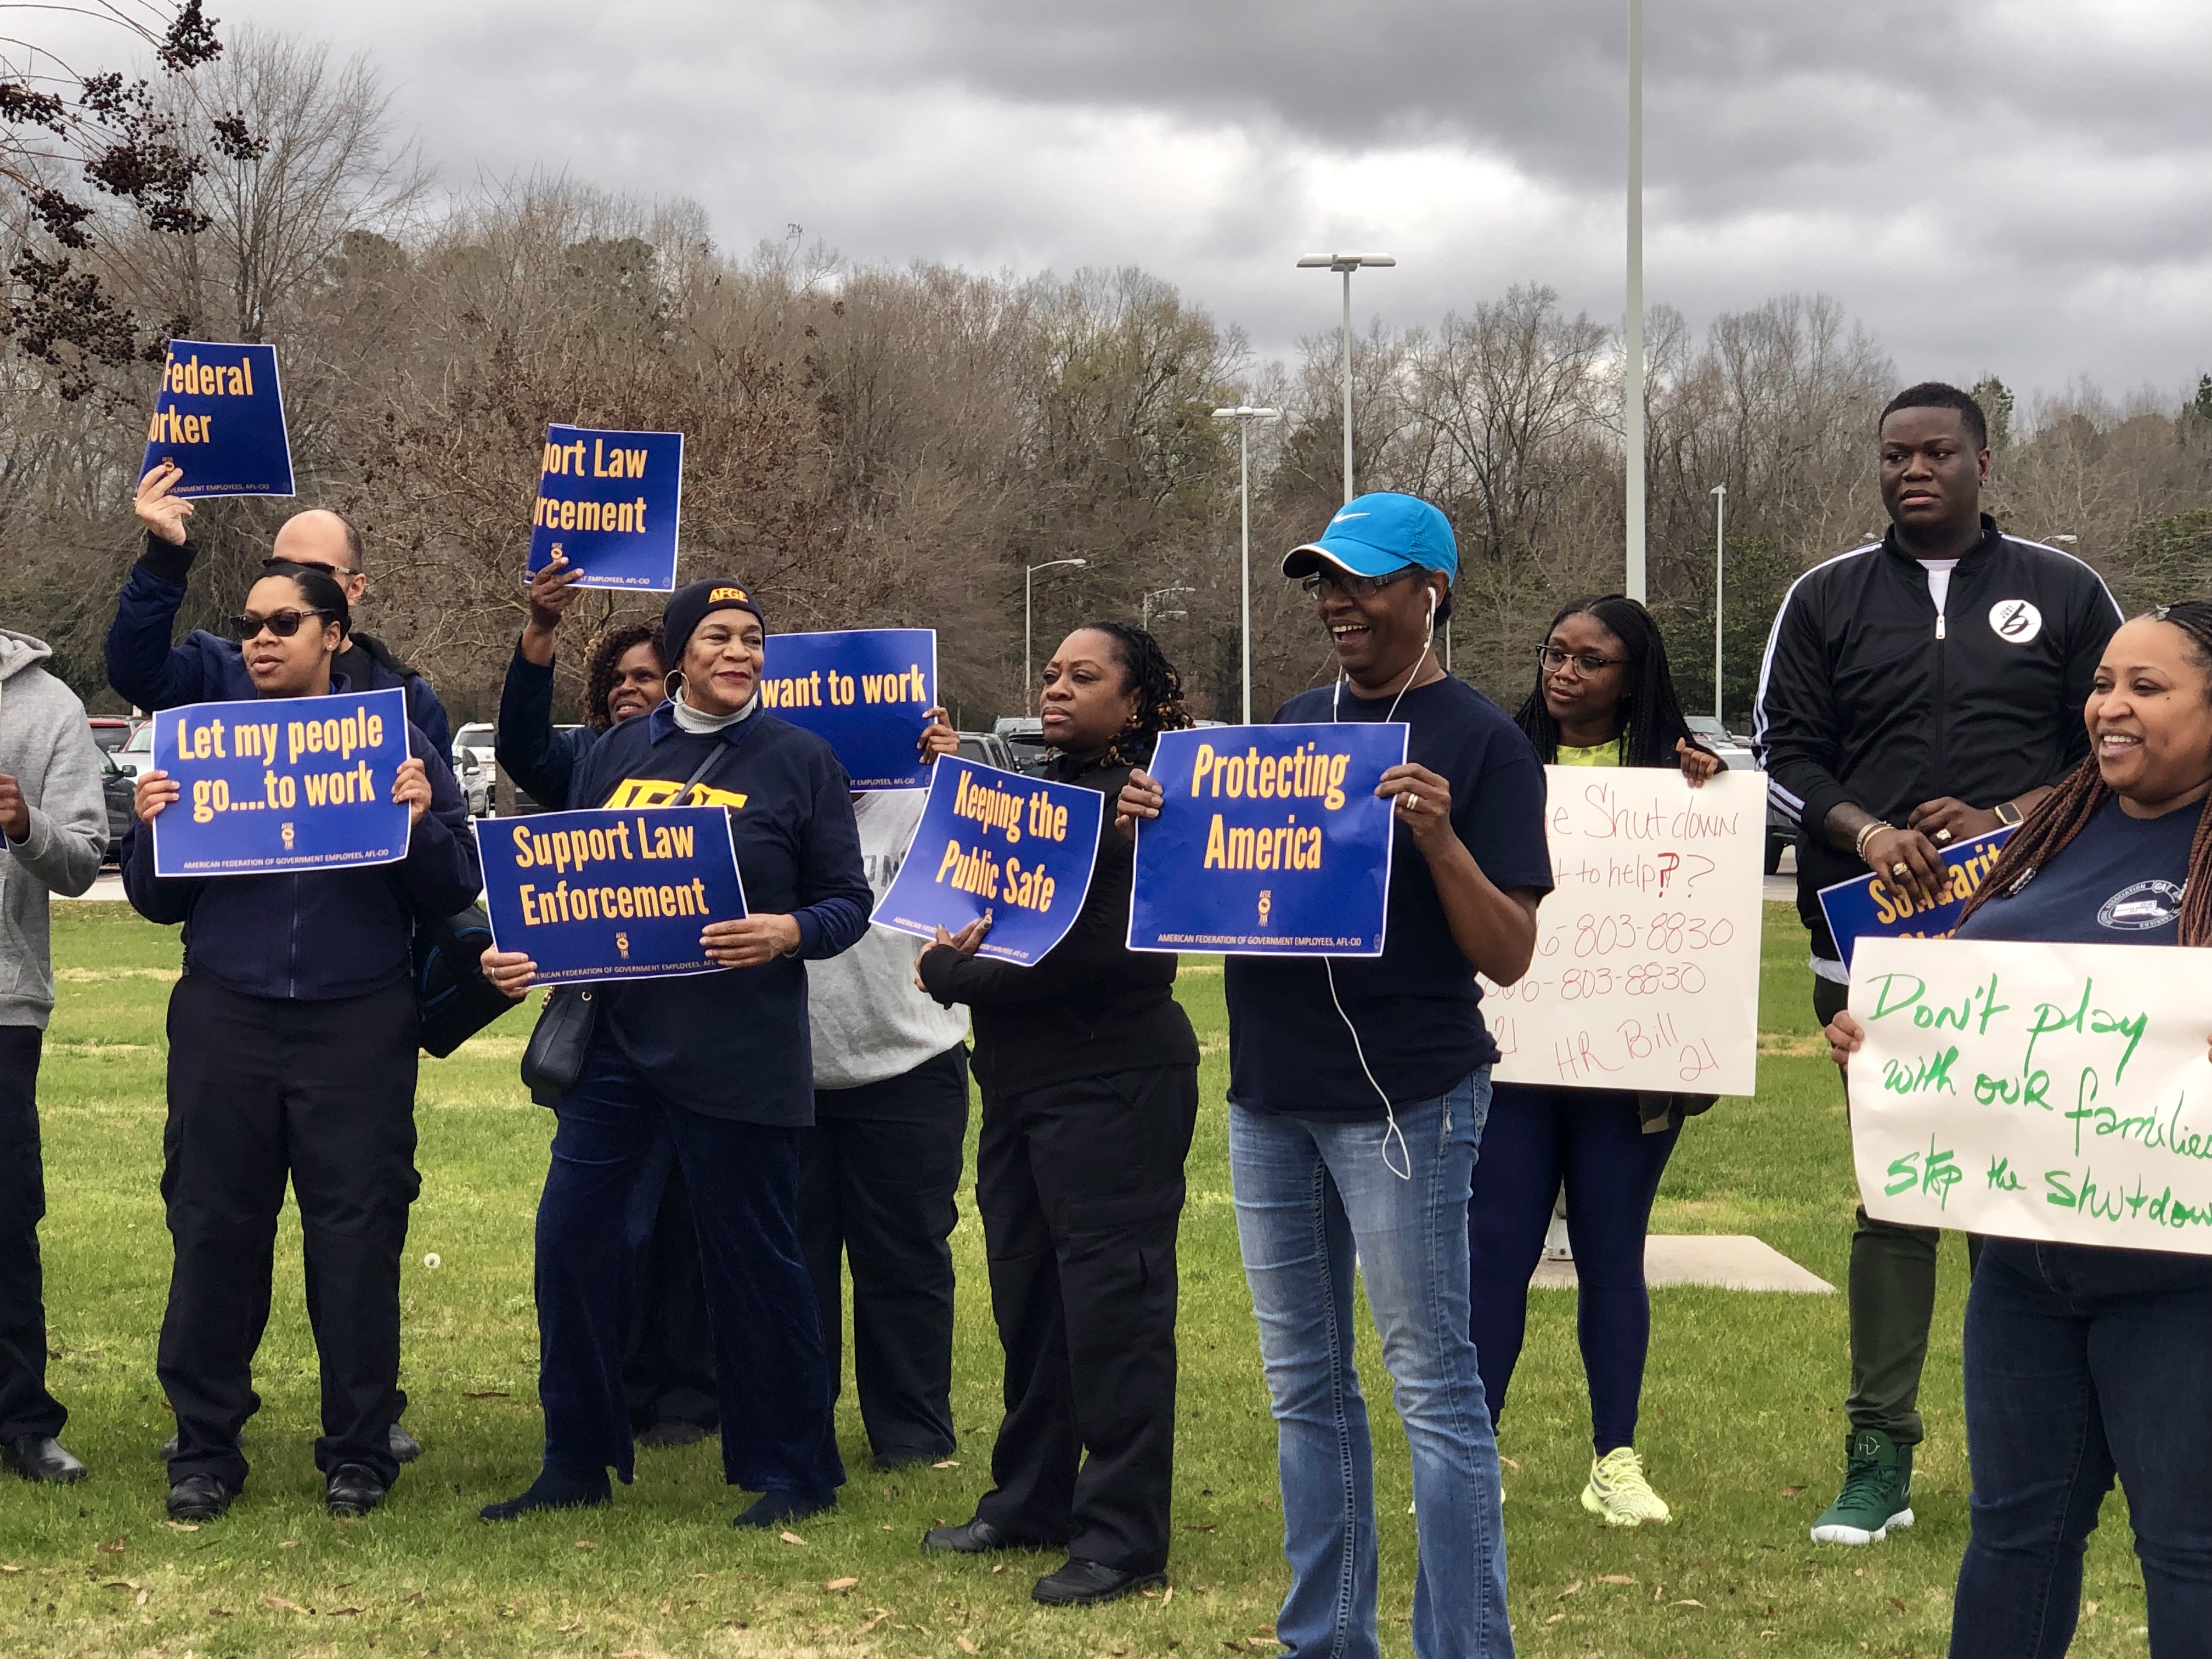 Federal employees sound off at a government shutdown rally